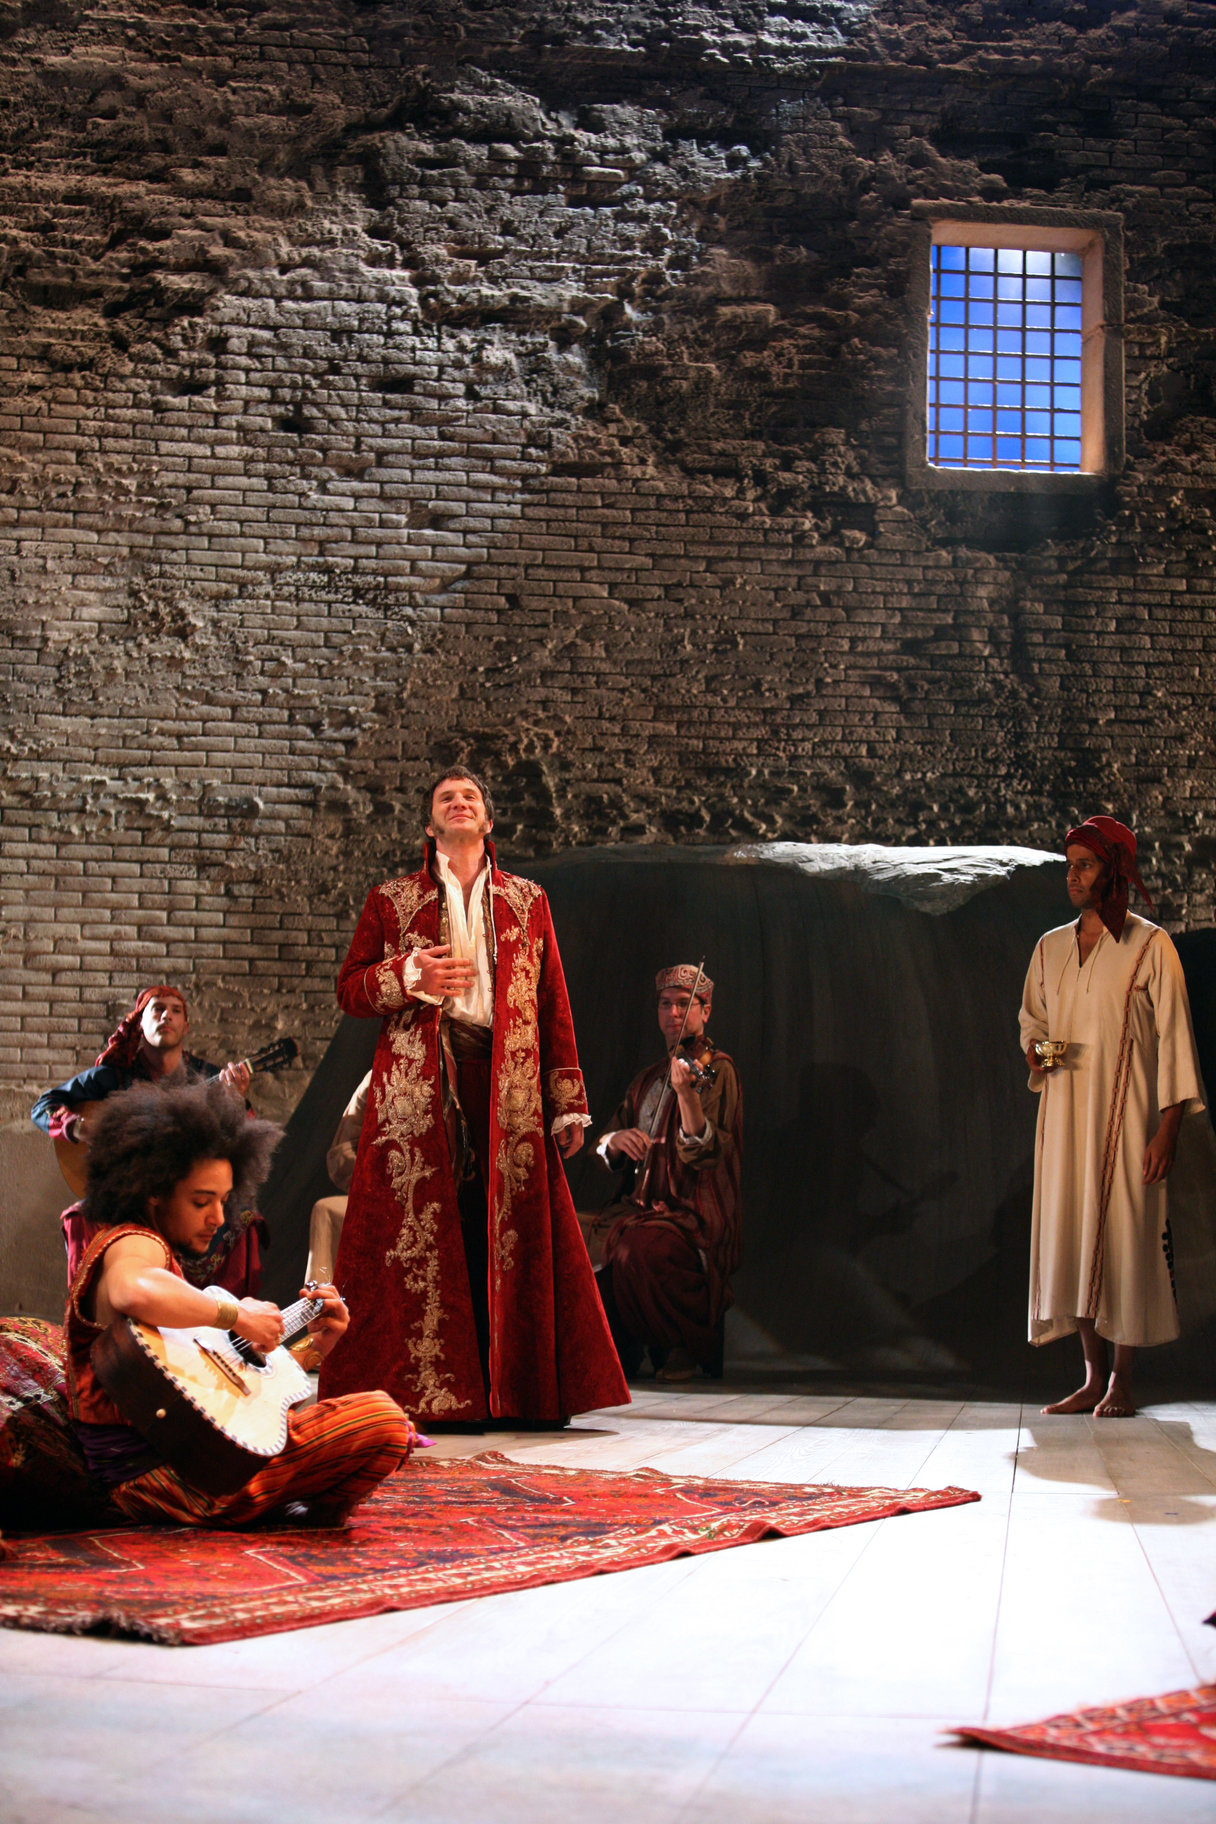 Orsino stands surrounded by musicians who are sat on the floor on rugs, he is wearing a red and gold robe, in the 2009 production of Twelfth Night.